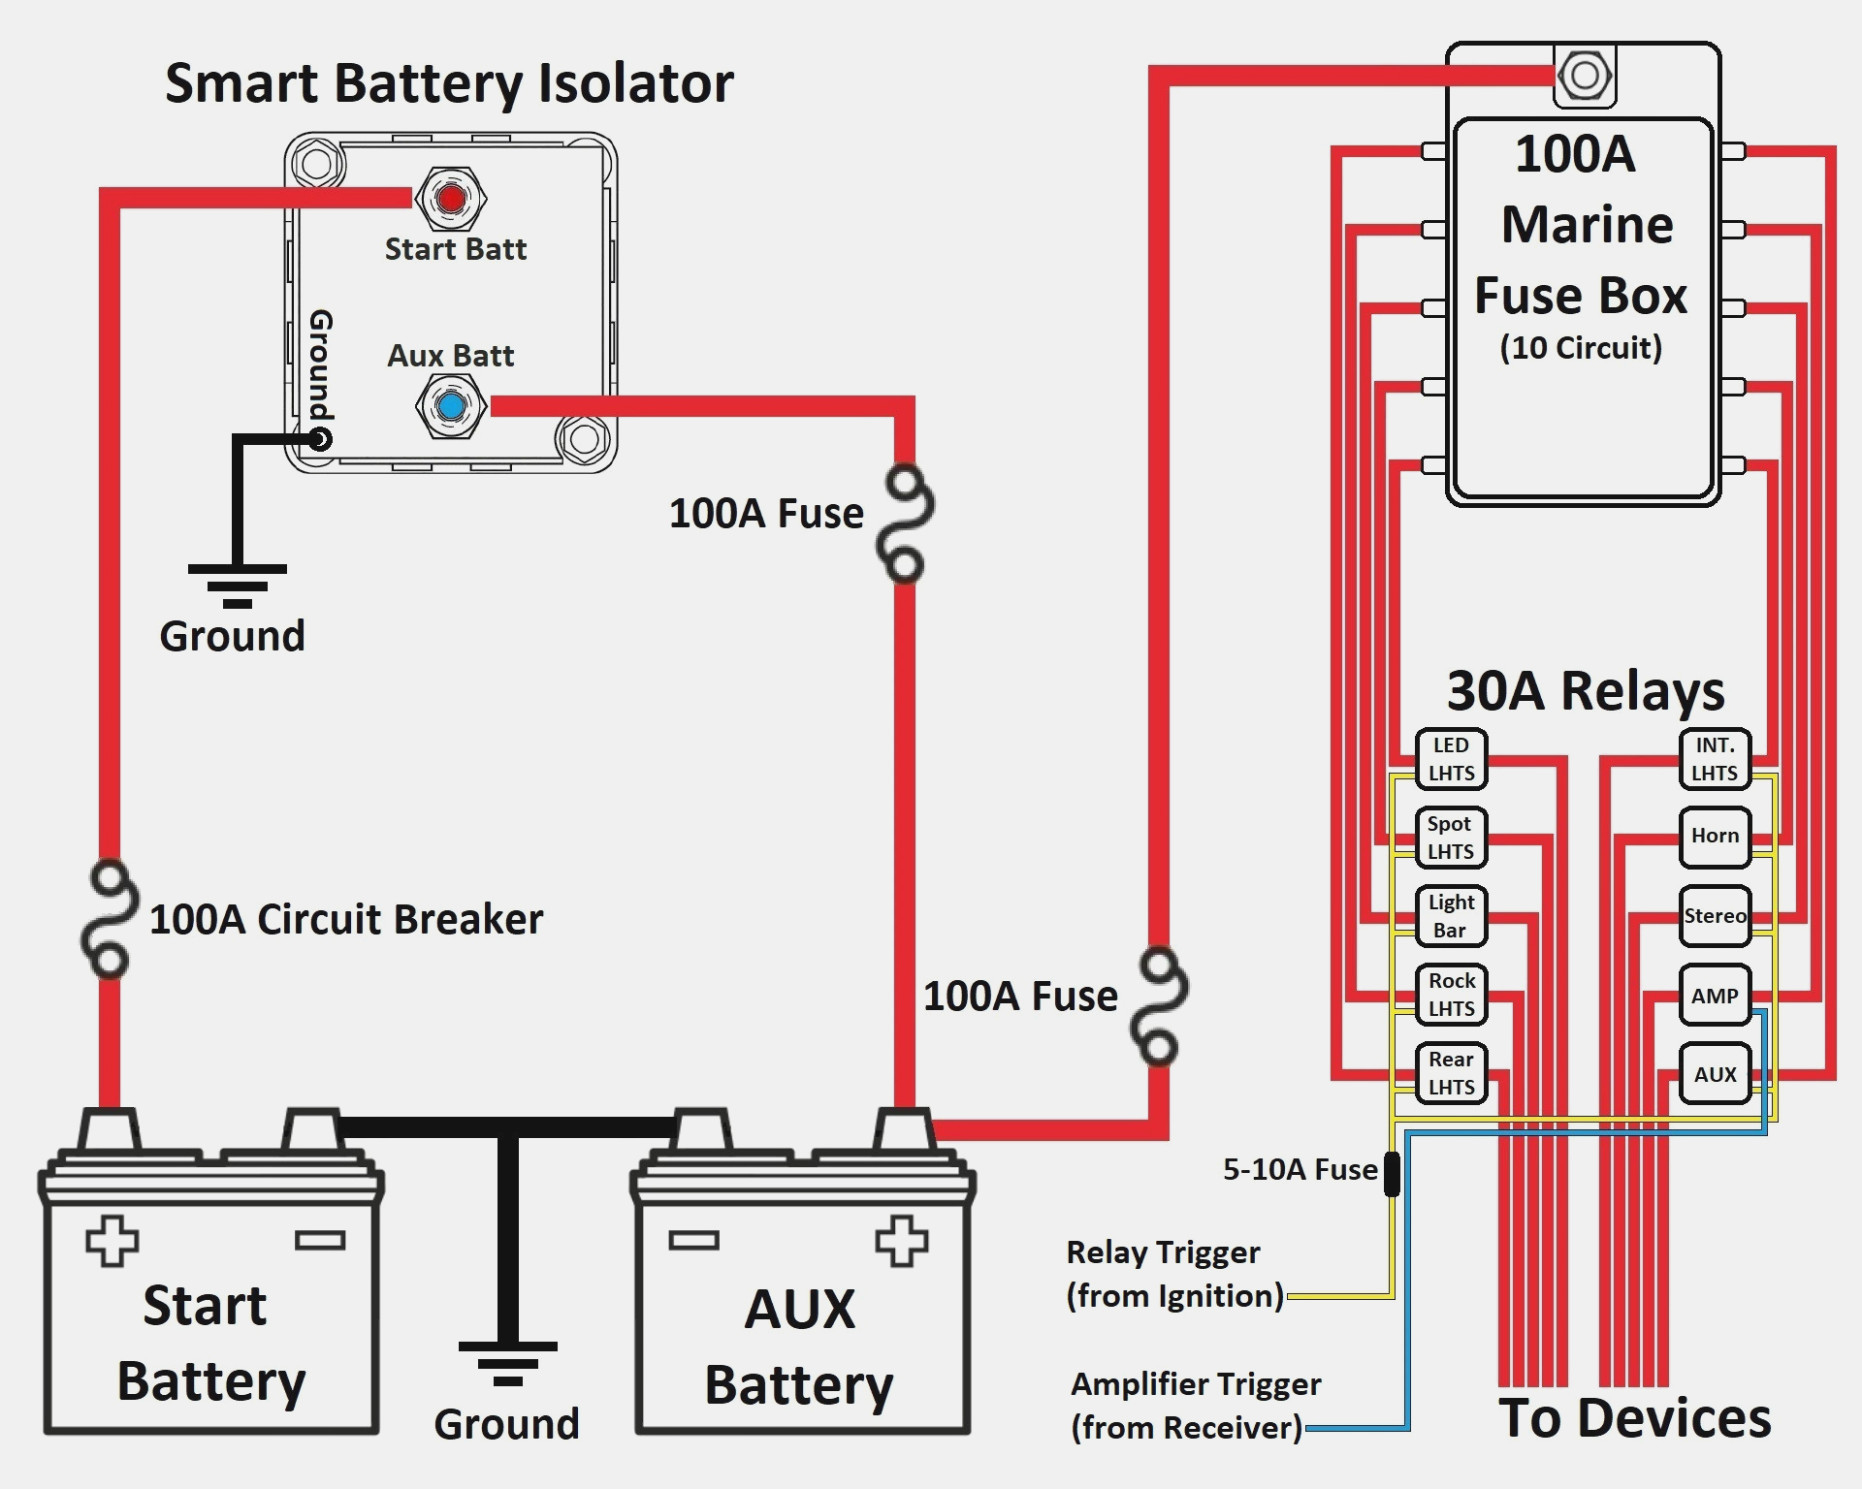 Dual Battery Isolator Wiring Diagram | Wiring Diagram - Dual Battery Isolator Wiring Diagram